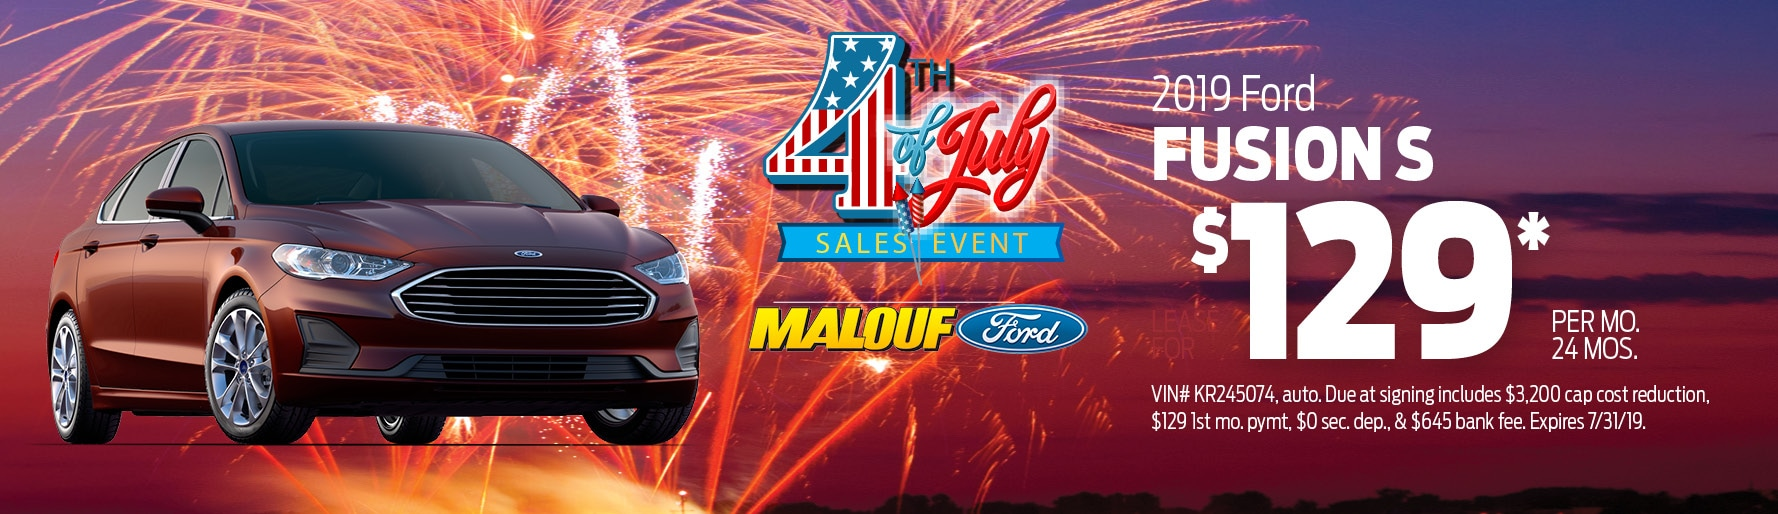 Ford Dealers Nj >> Ford Specials From Malouf Ford Ford Dealer Nj Malouf Ford